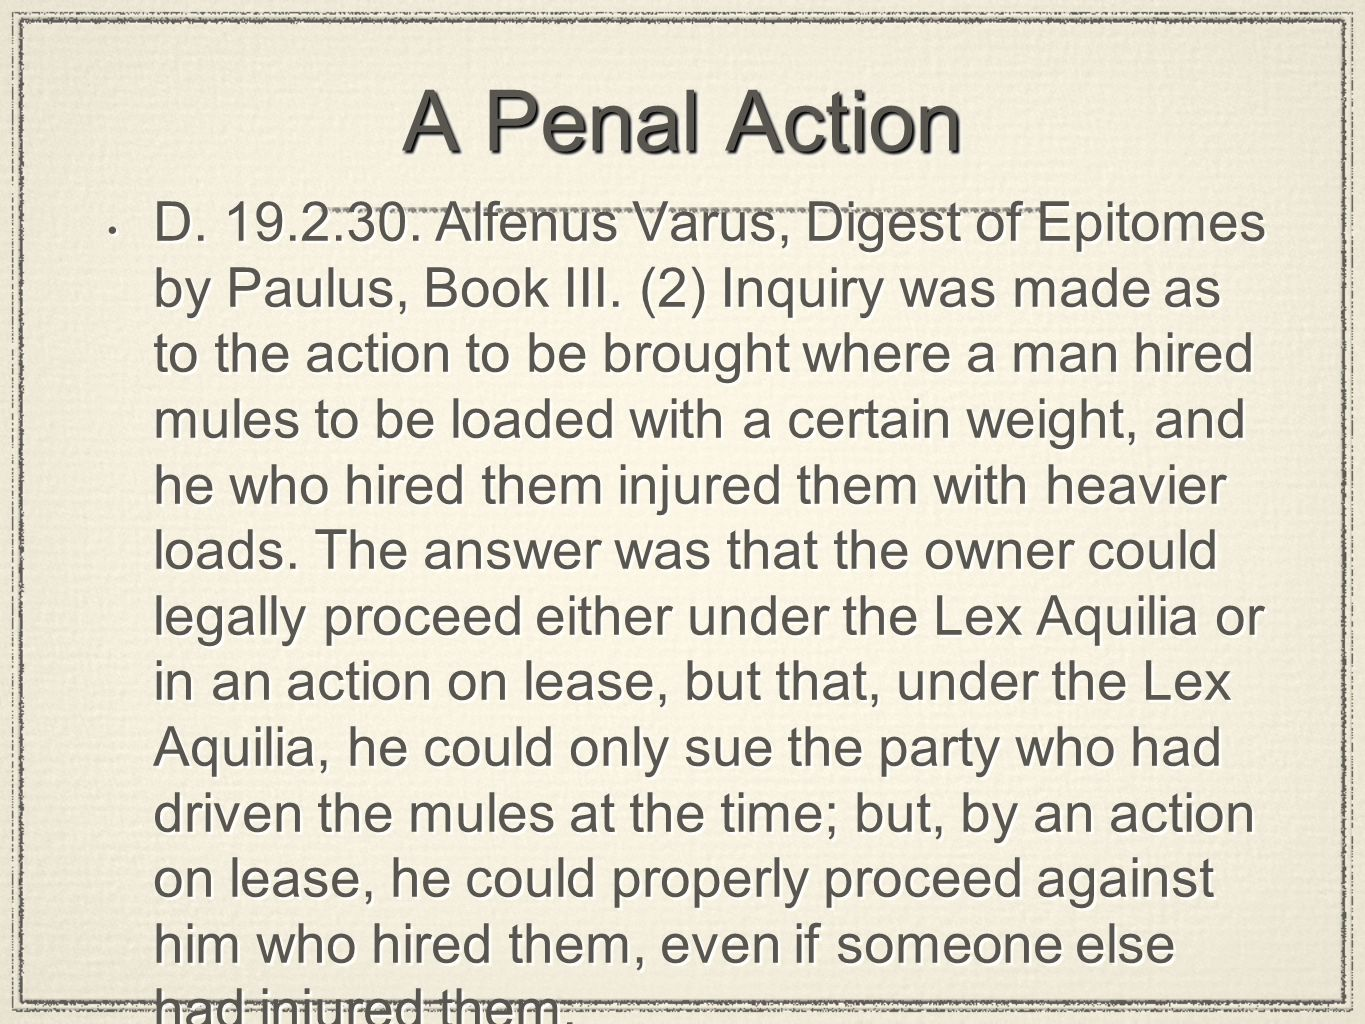 A Penal Action D. 19.2.30. Alfenus Varus, Digest of Epitomes by Paulus, Book III. (2) Inquiry was made as to the action to be brought where a man hire